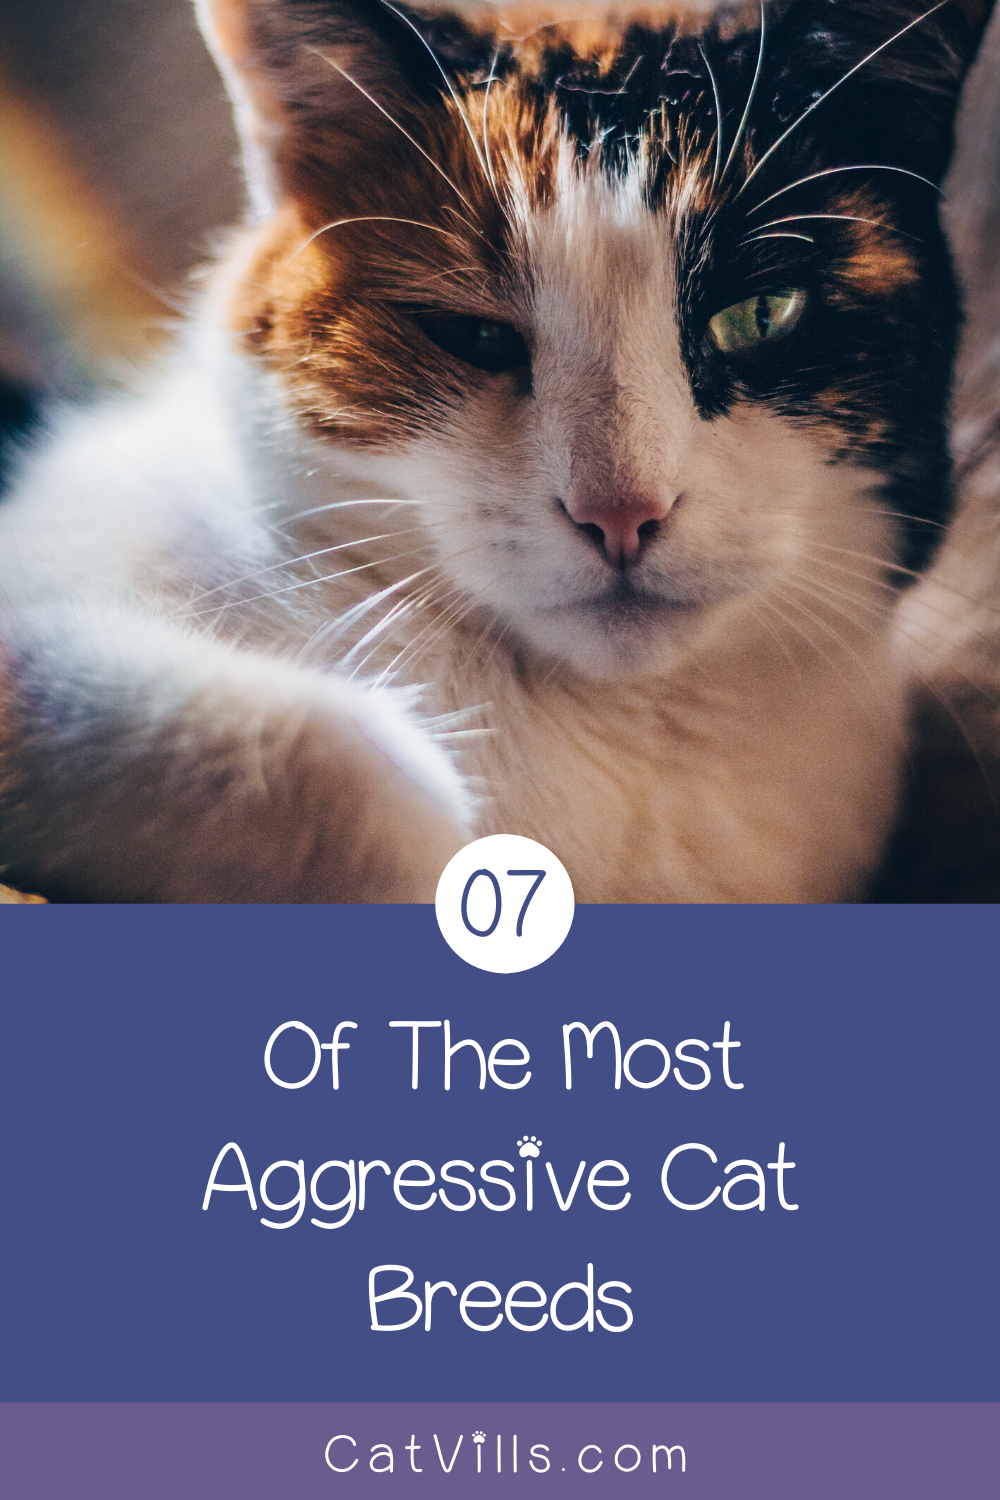 7 Most Aggressive Cat Breeds in 2020 (With images) Cat